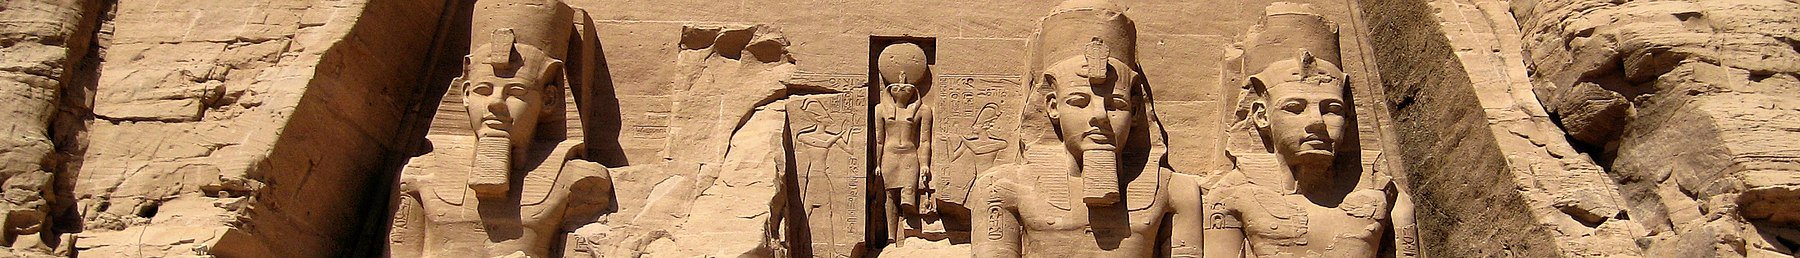 Upper Egypt banner Great Temple of Abu Simbel.jpg